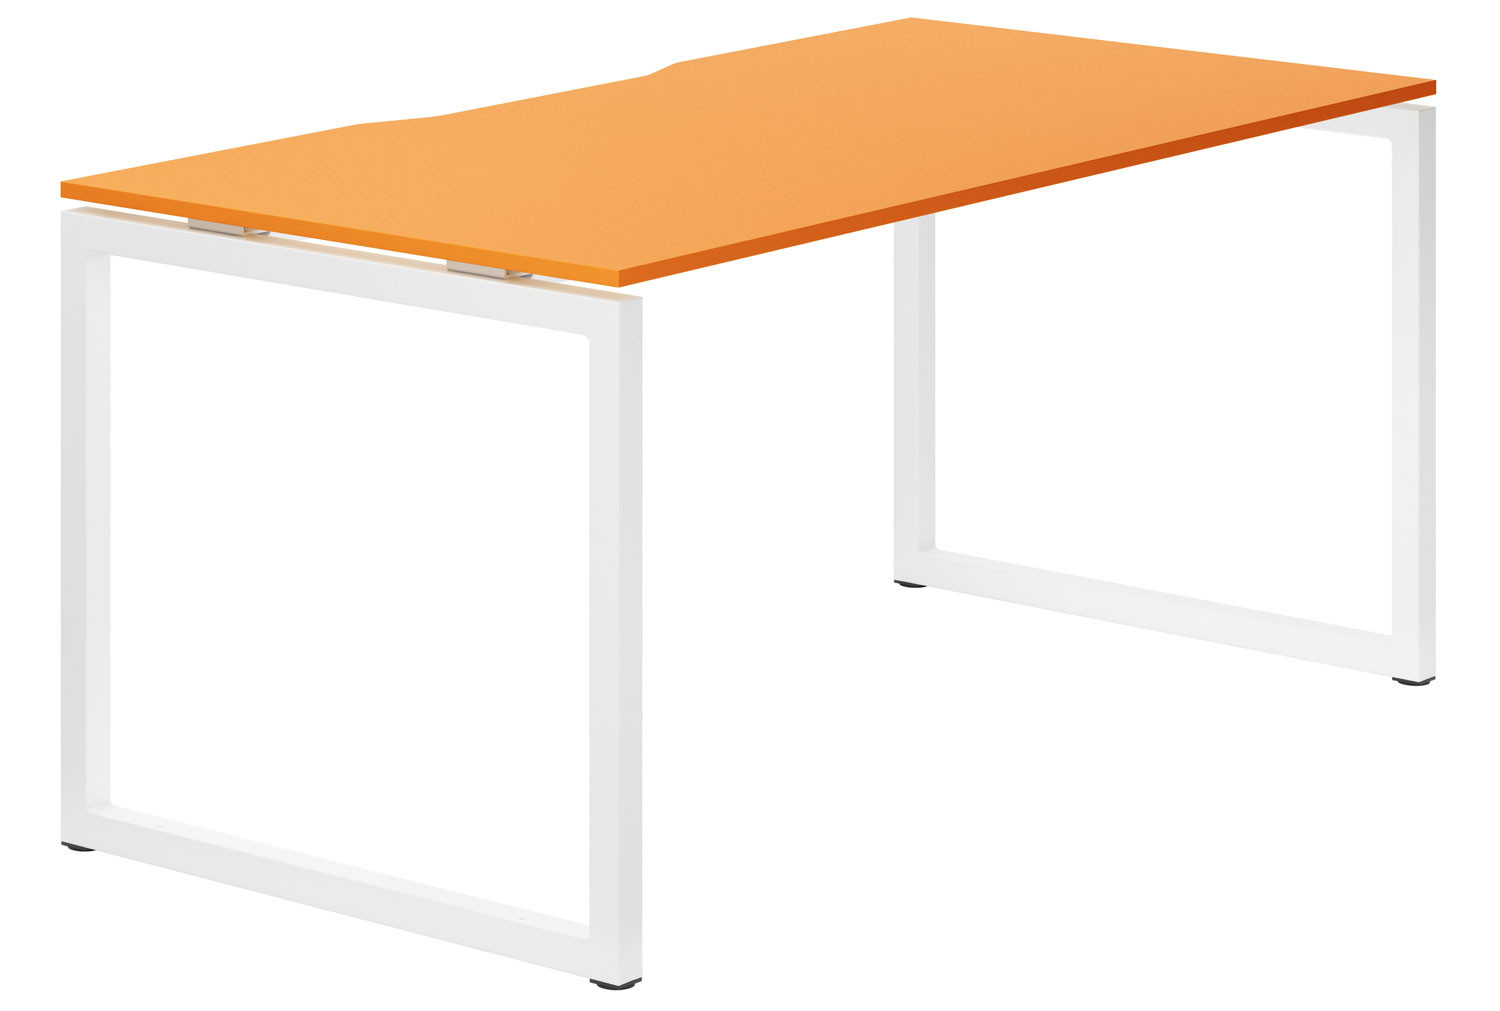 Campos Hooped Leg Single Bench Desk (Orange)